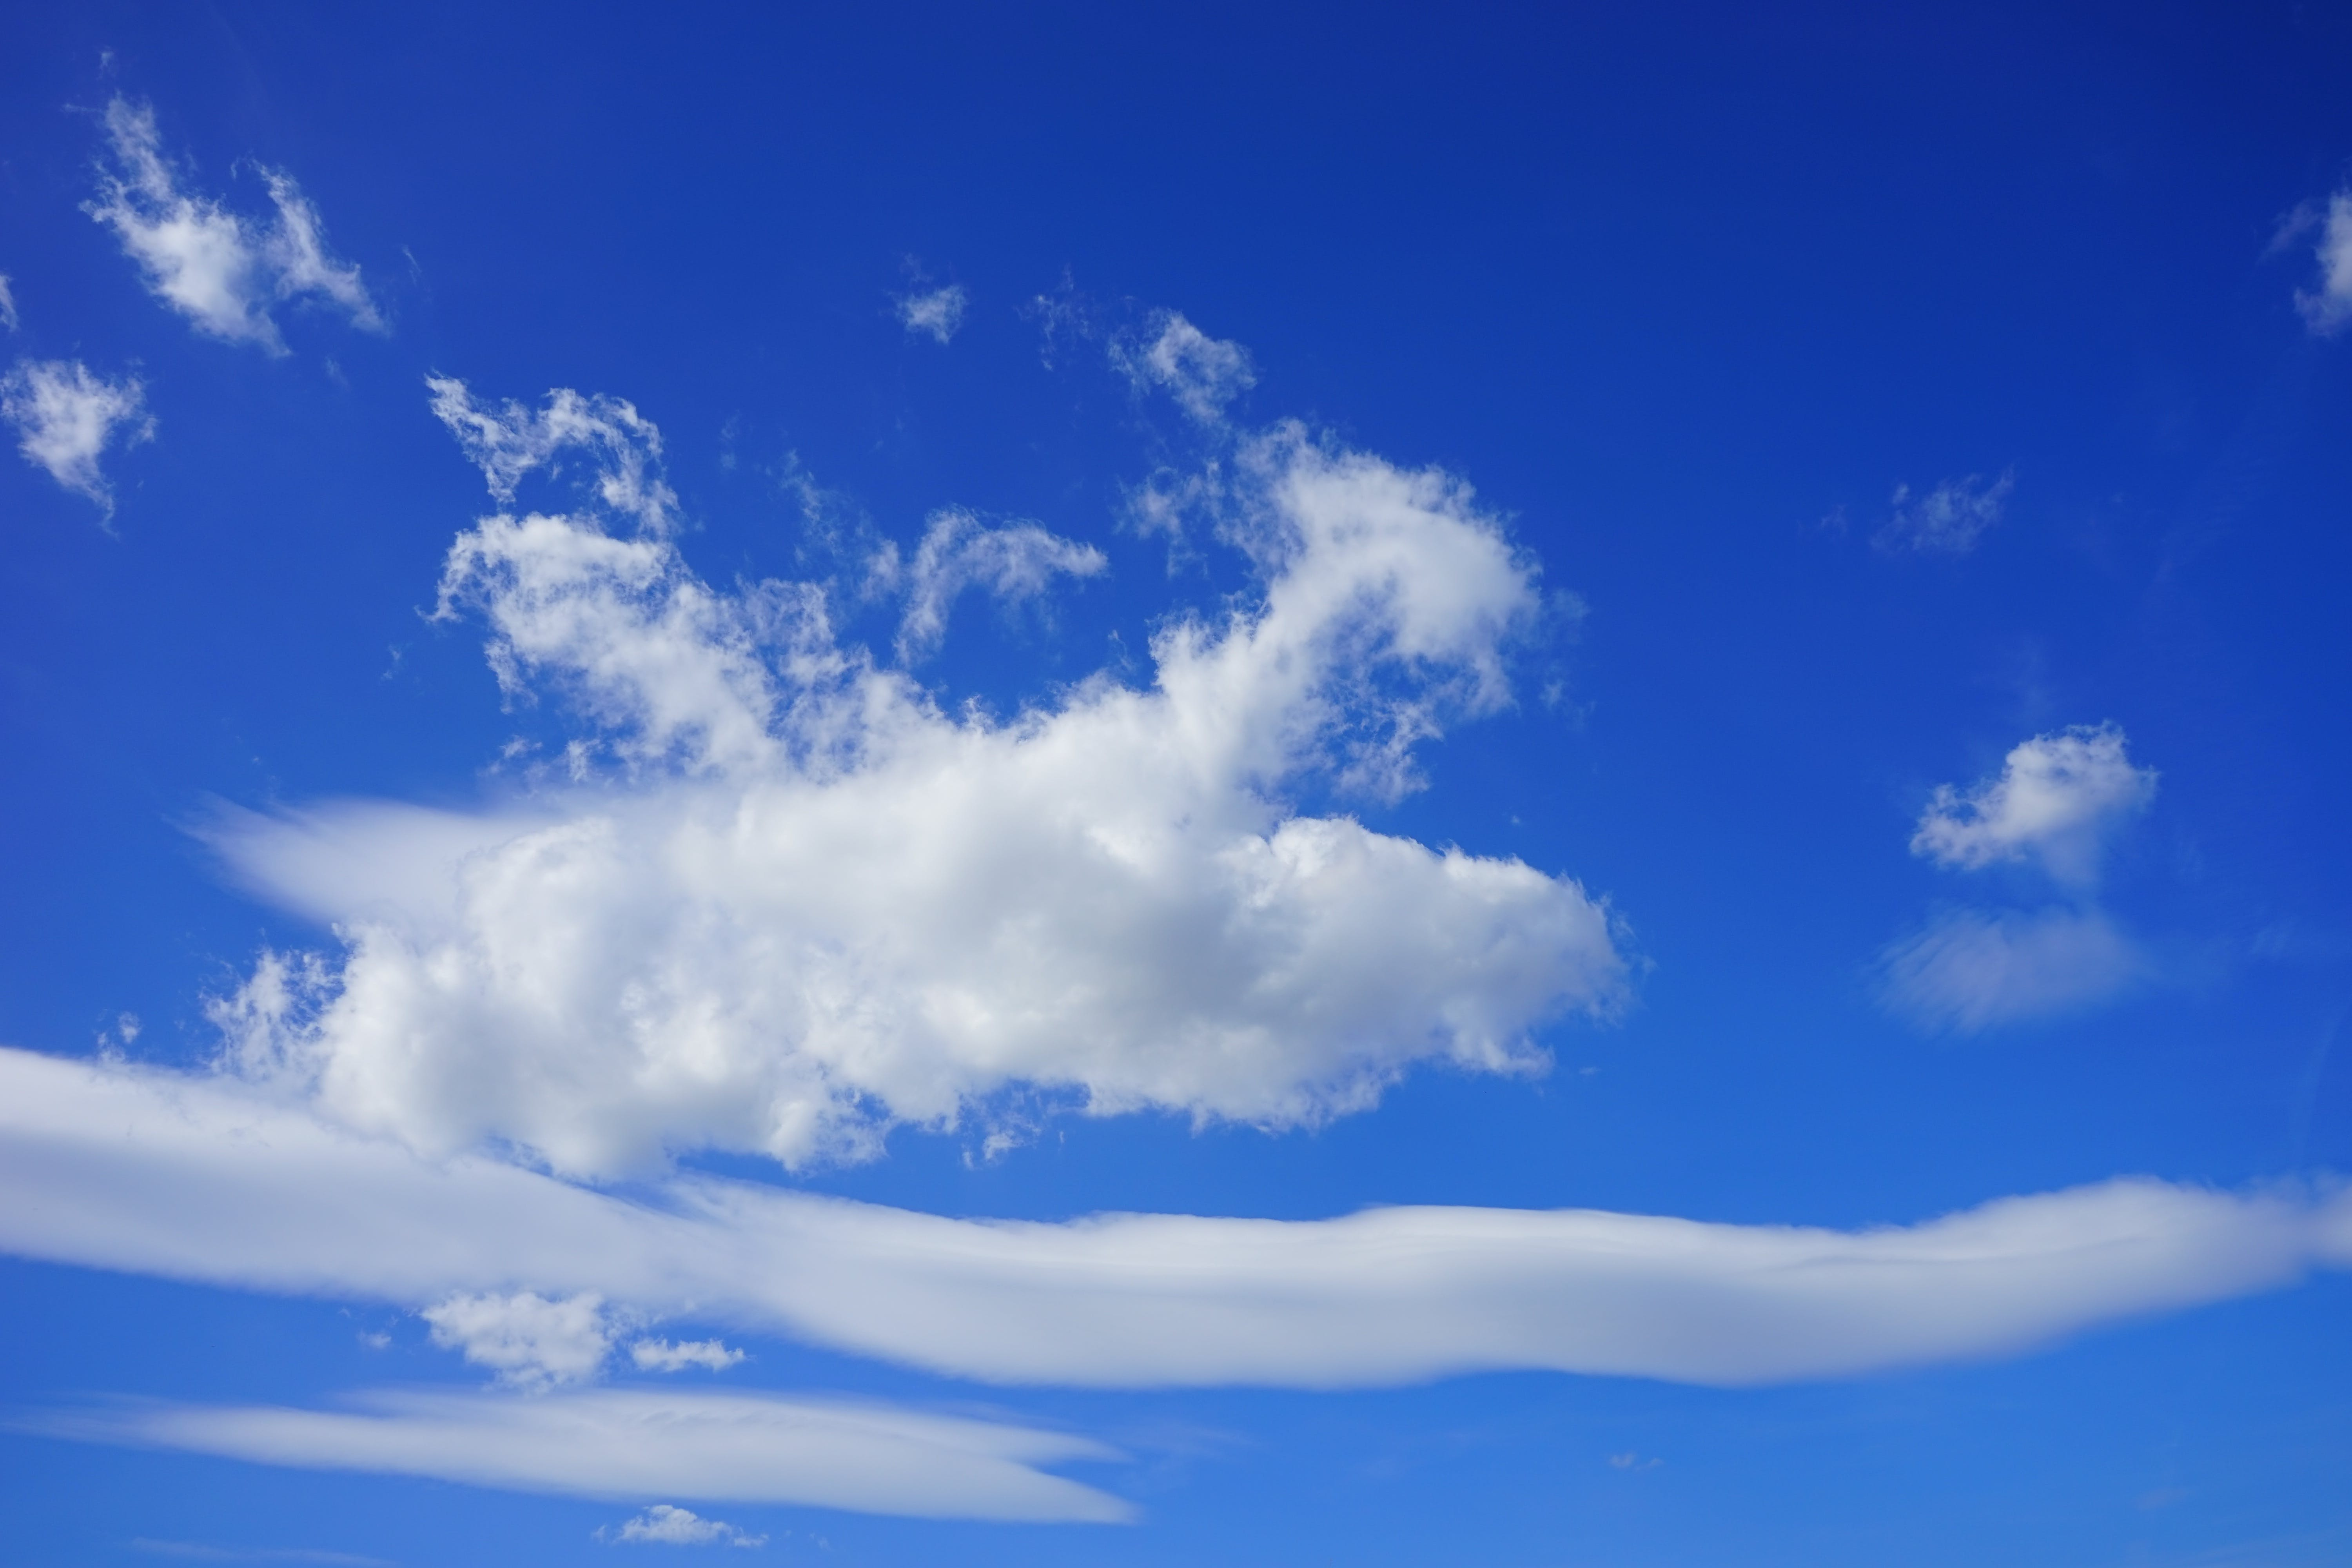 Free stock photo of above the clouds, azur, beautiful day, blue